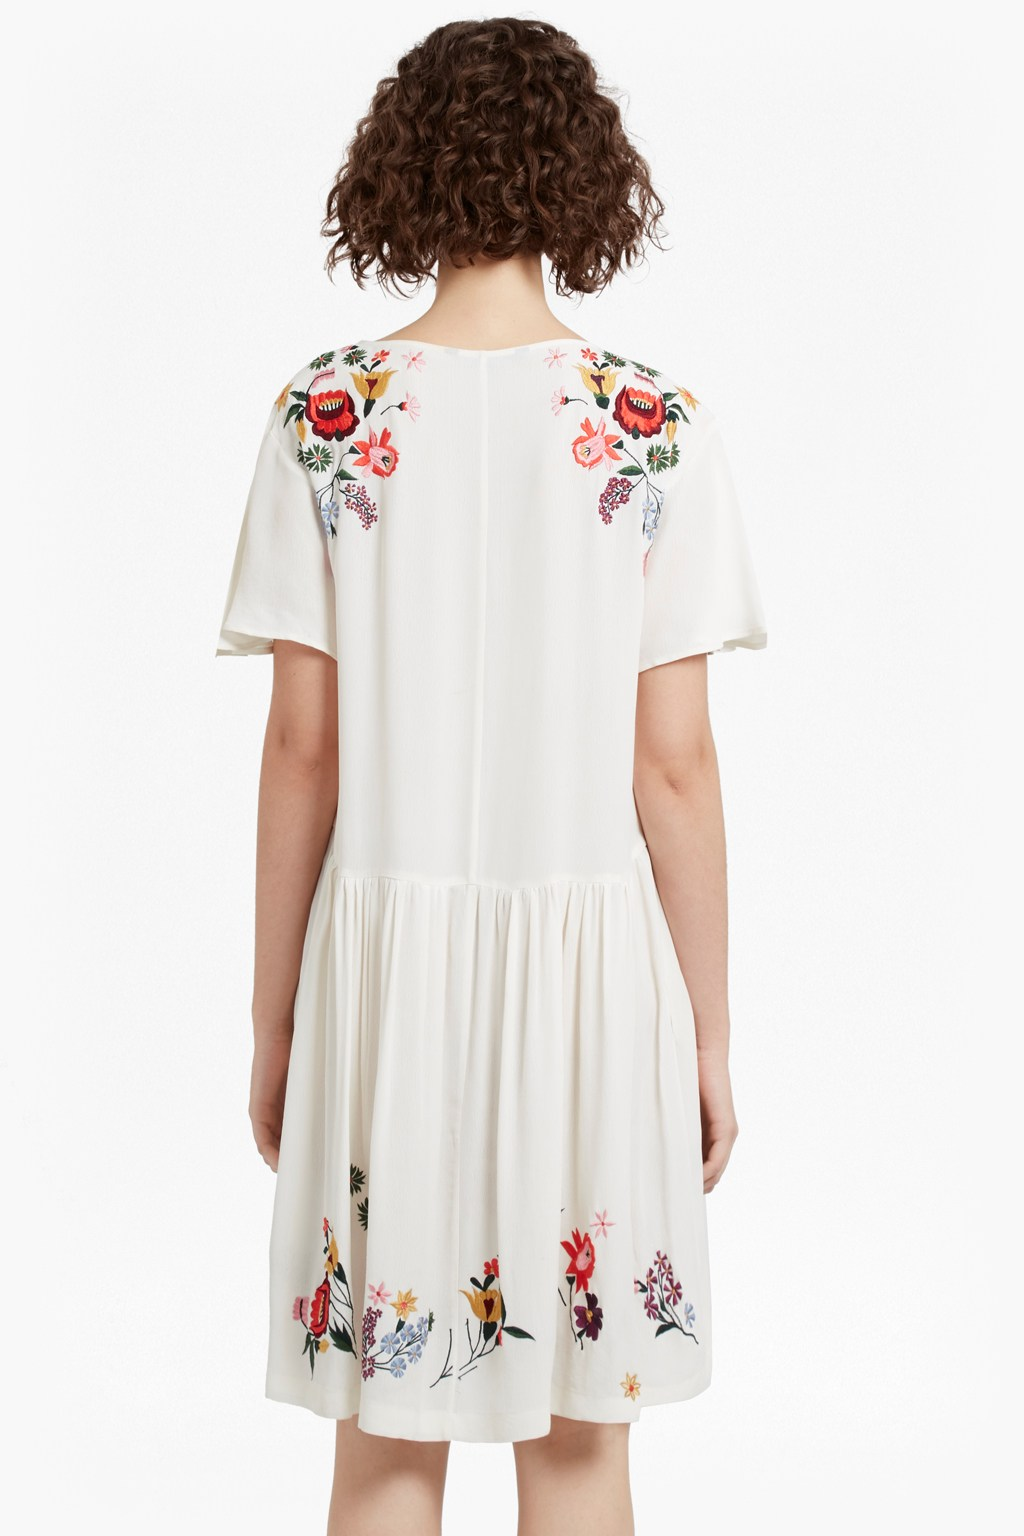 71dfd6d15d1 Alice Drape Embroidered Dress   Collections   French Connection